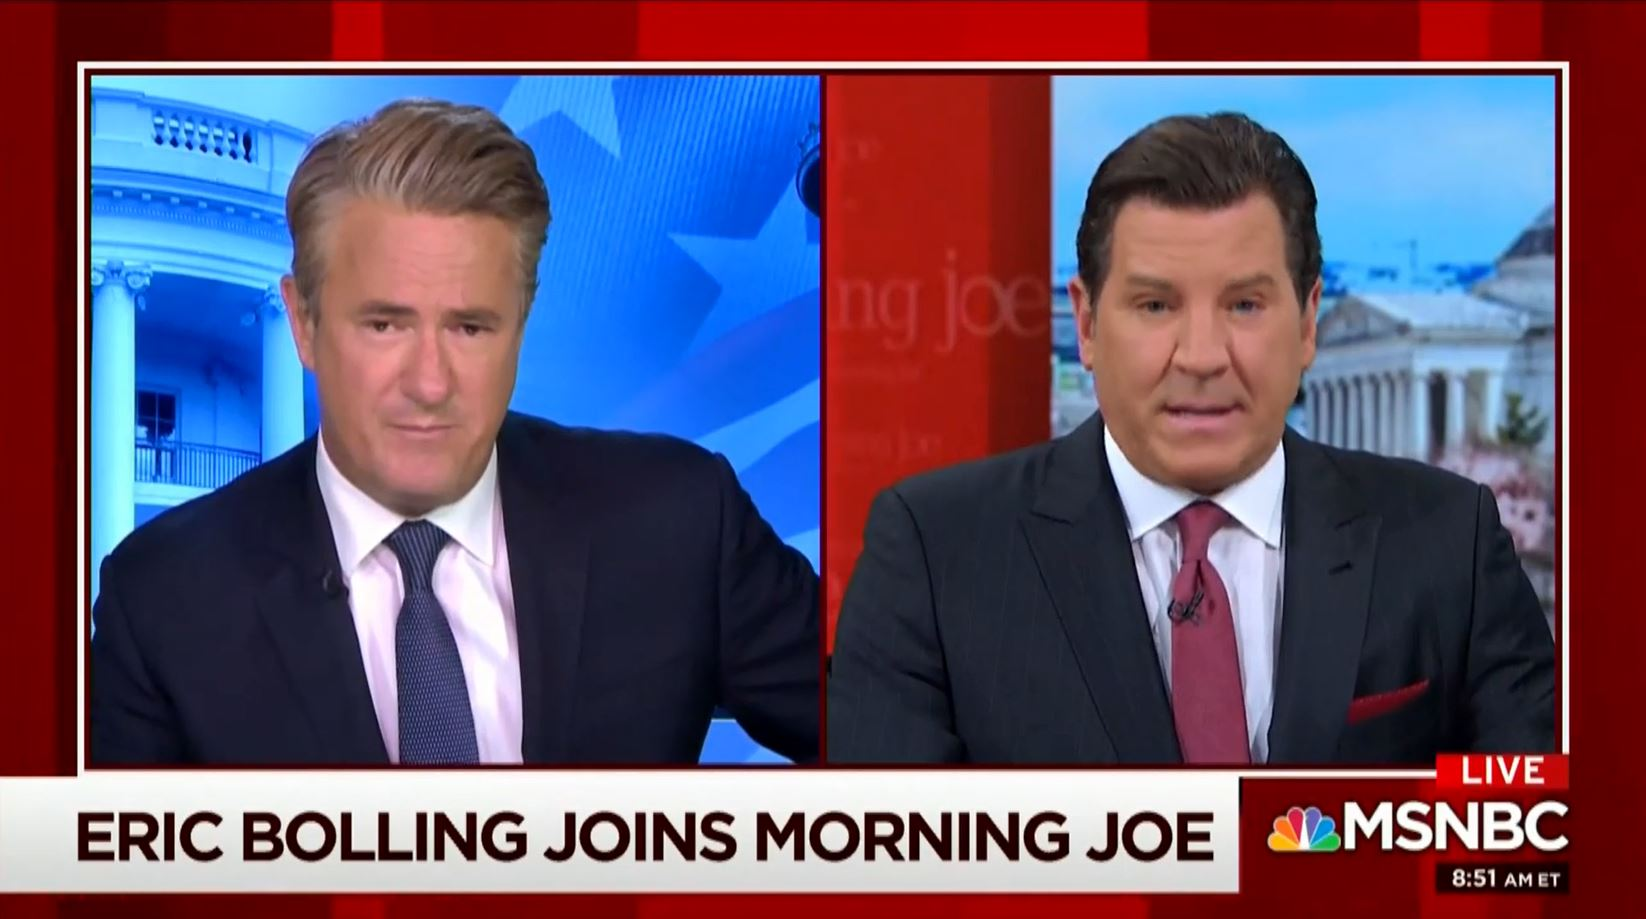 Morning Joe promotes the new CRTV show of Eric Bolling, who